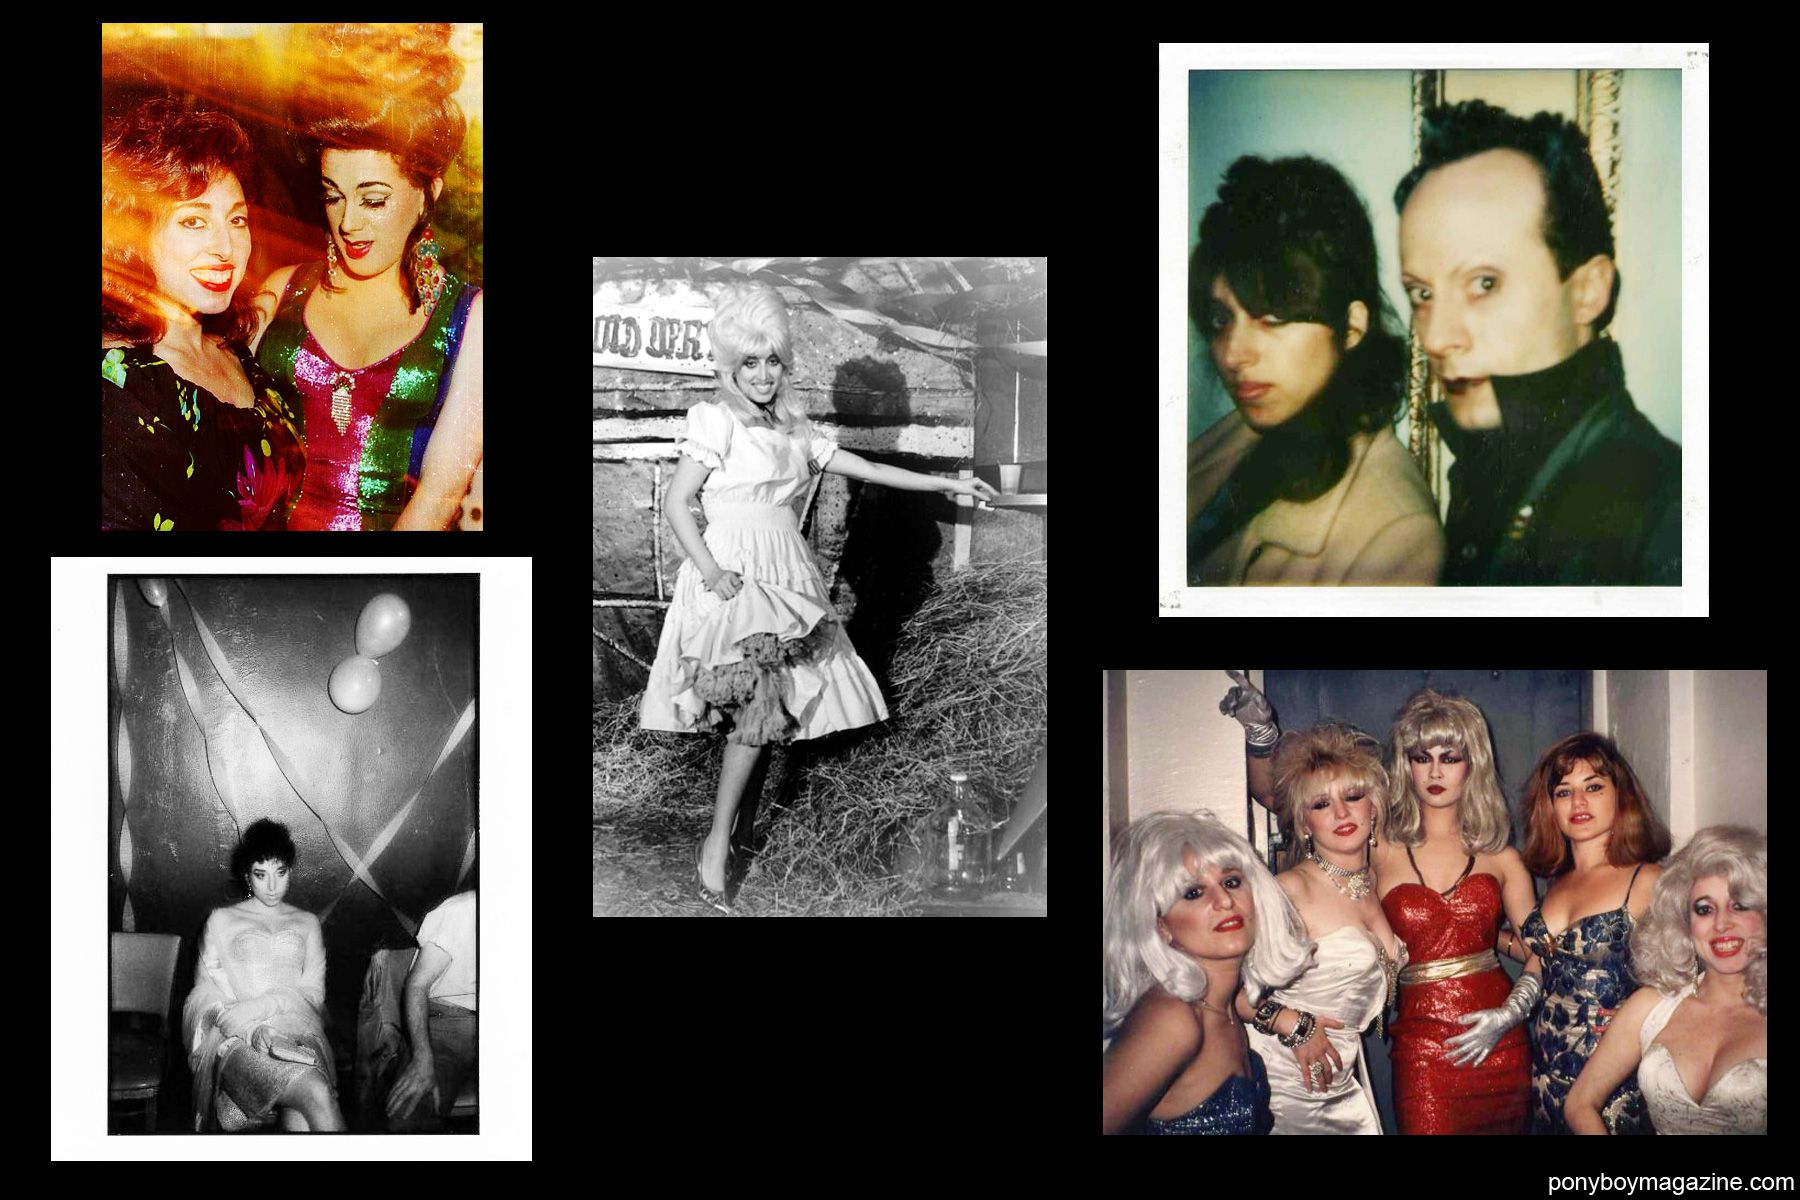 Assorted photos of Kay K and friends, including Klaus Nomi for Ponyboy Magazine.